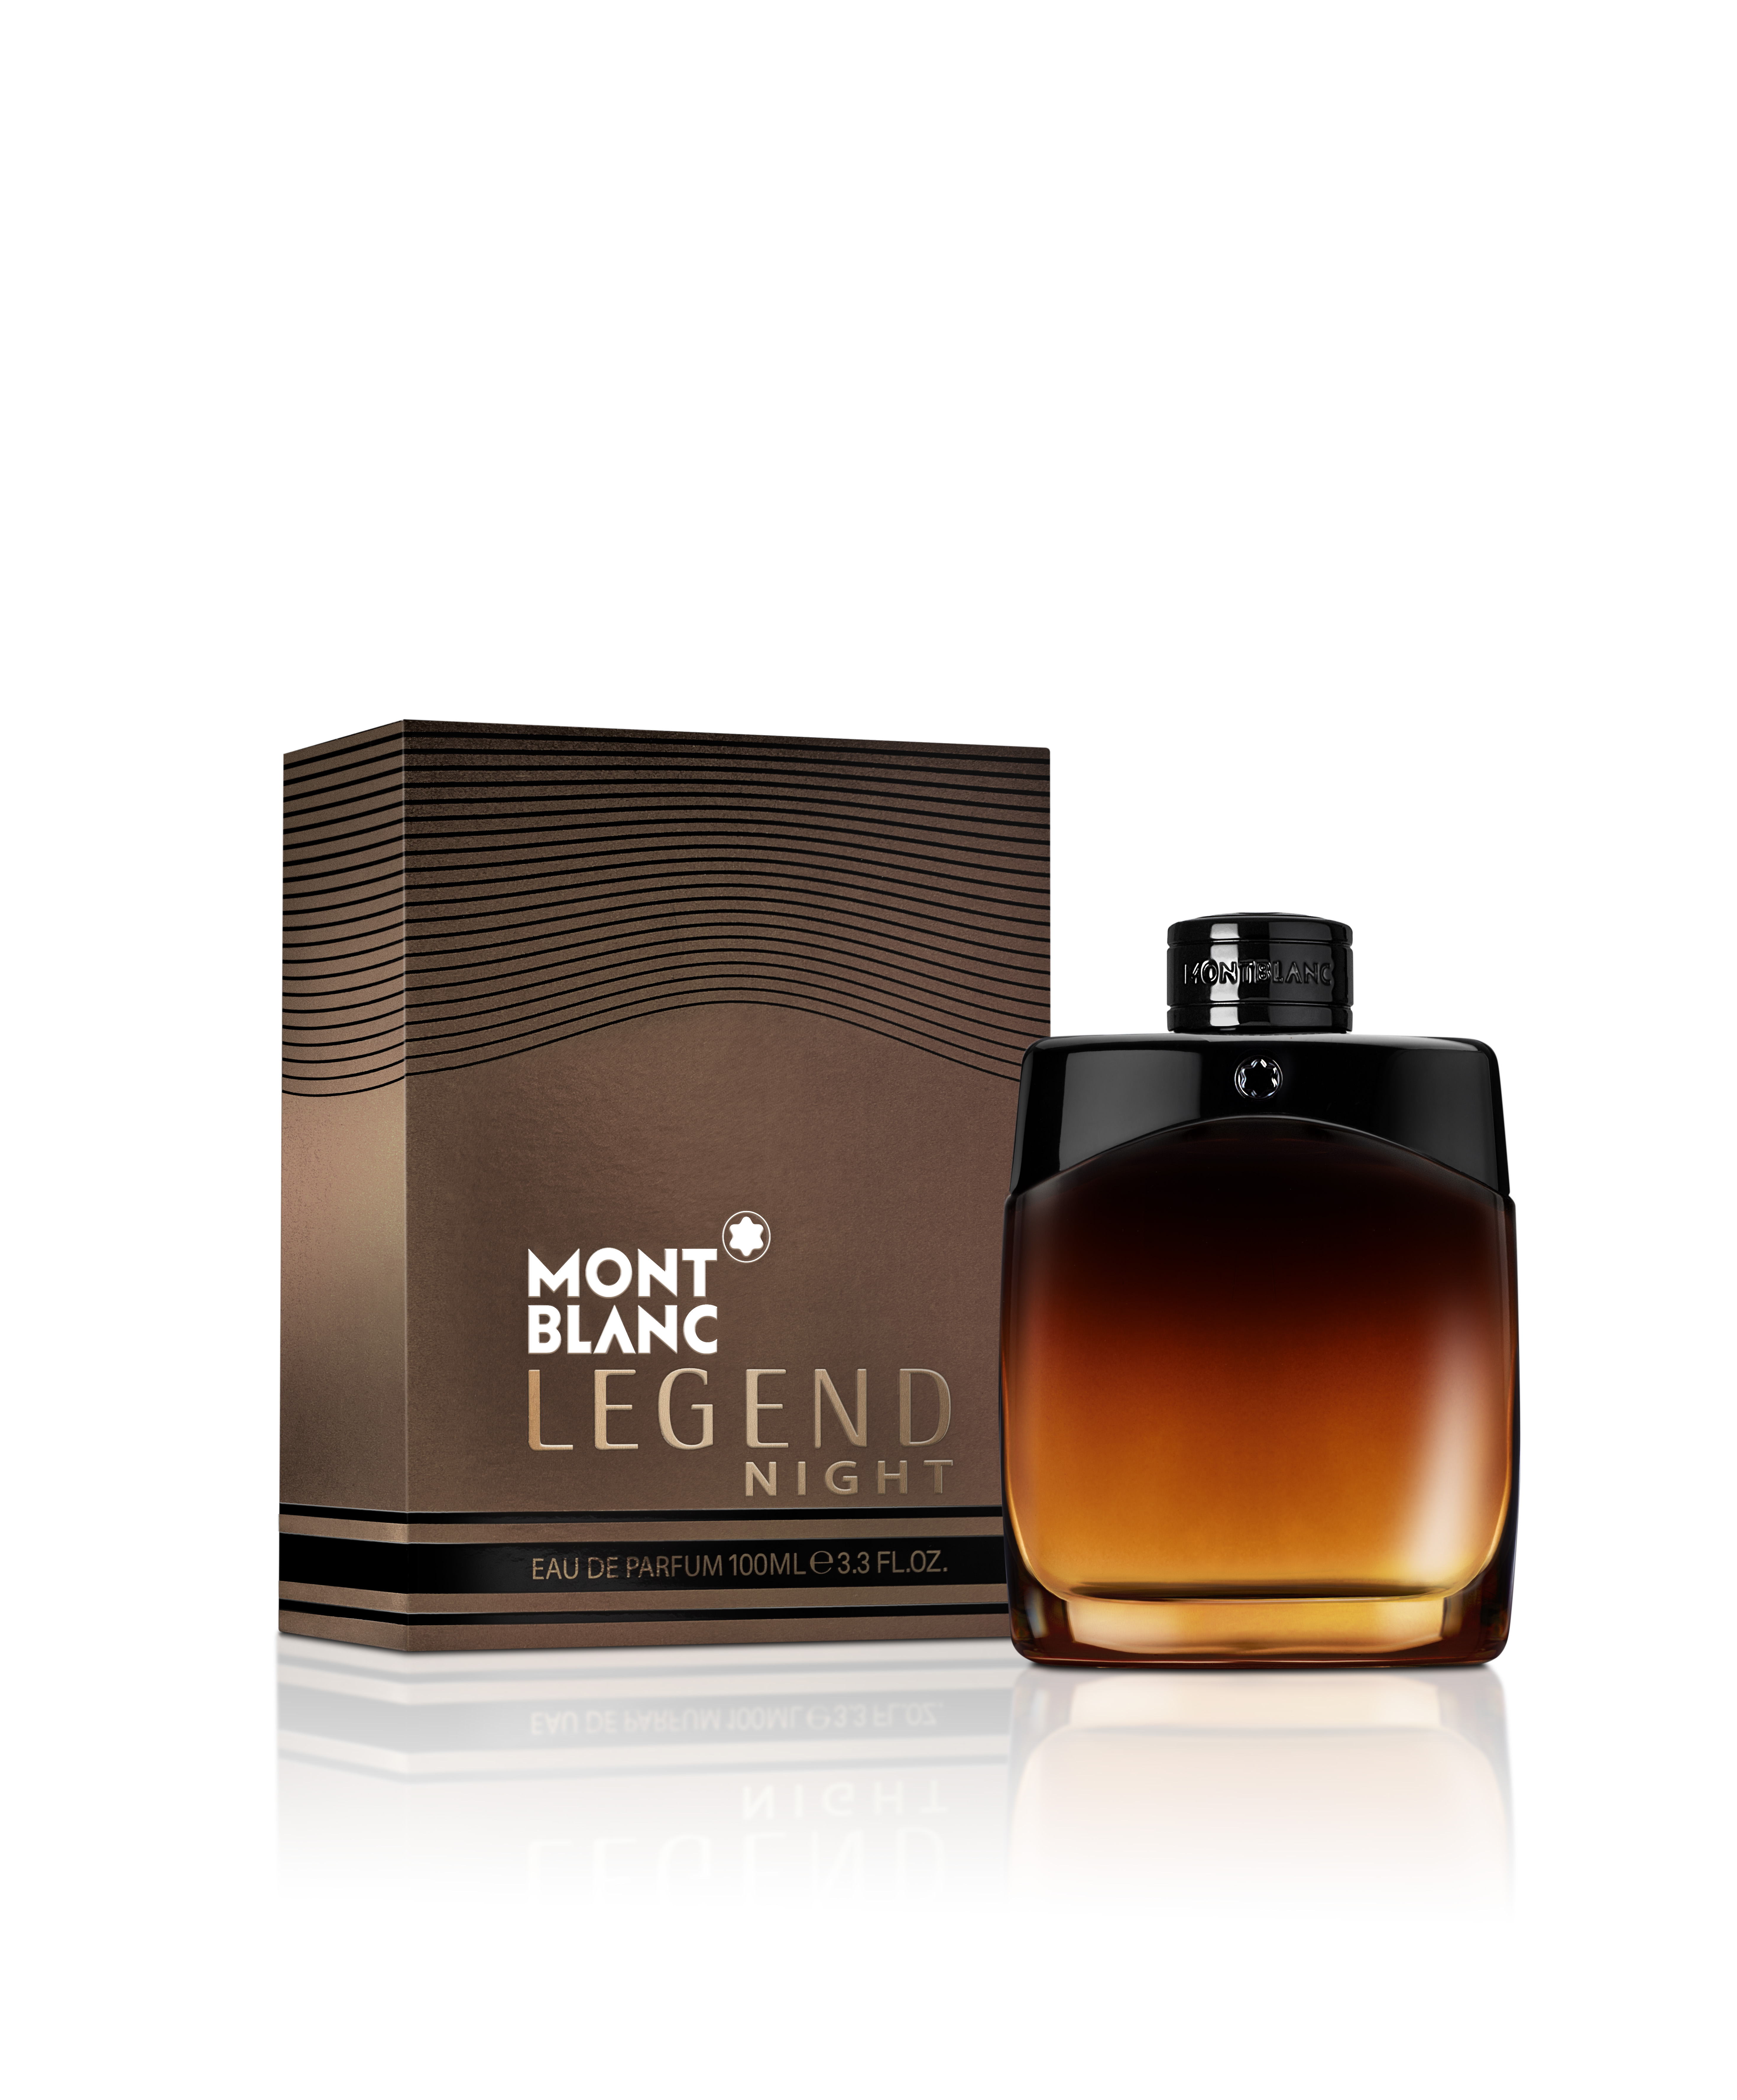 Montblanc Legend Night, £67 for 100ml, exclusively at The Perfume Shop 12th March 2018, Nationwide 3rd April 2018